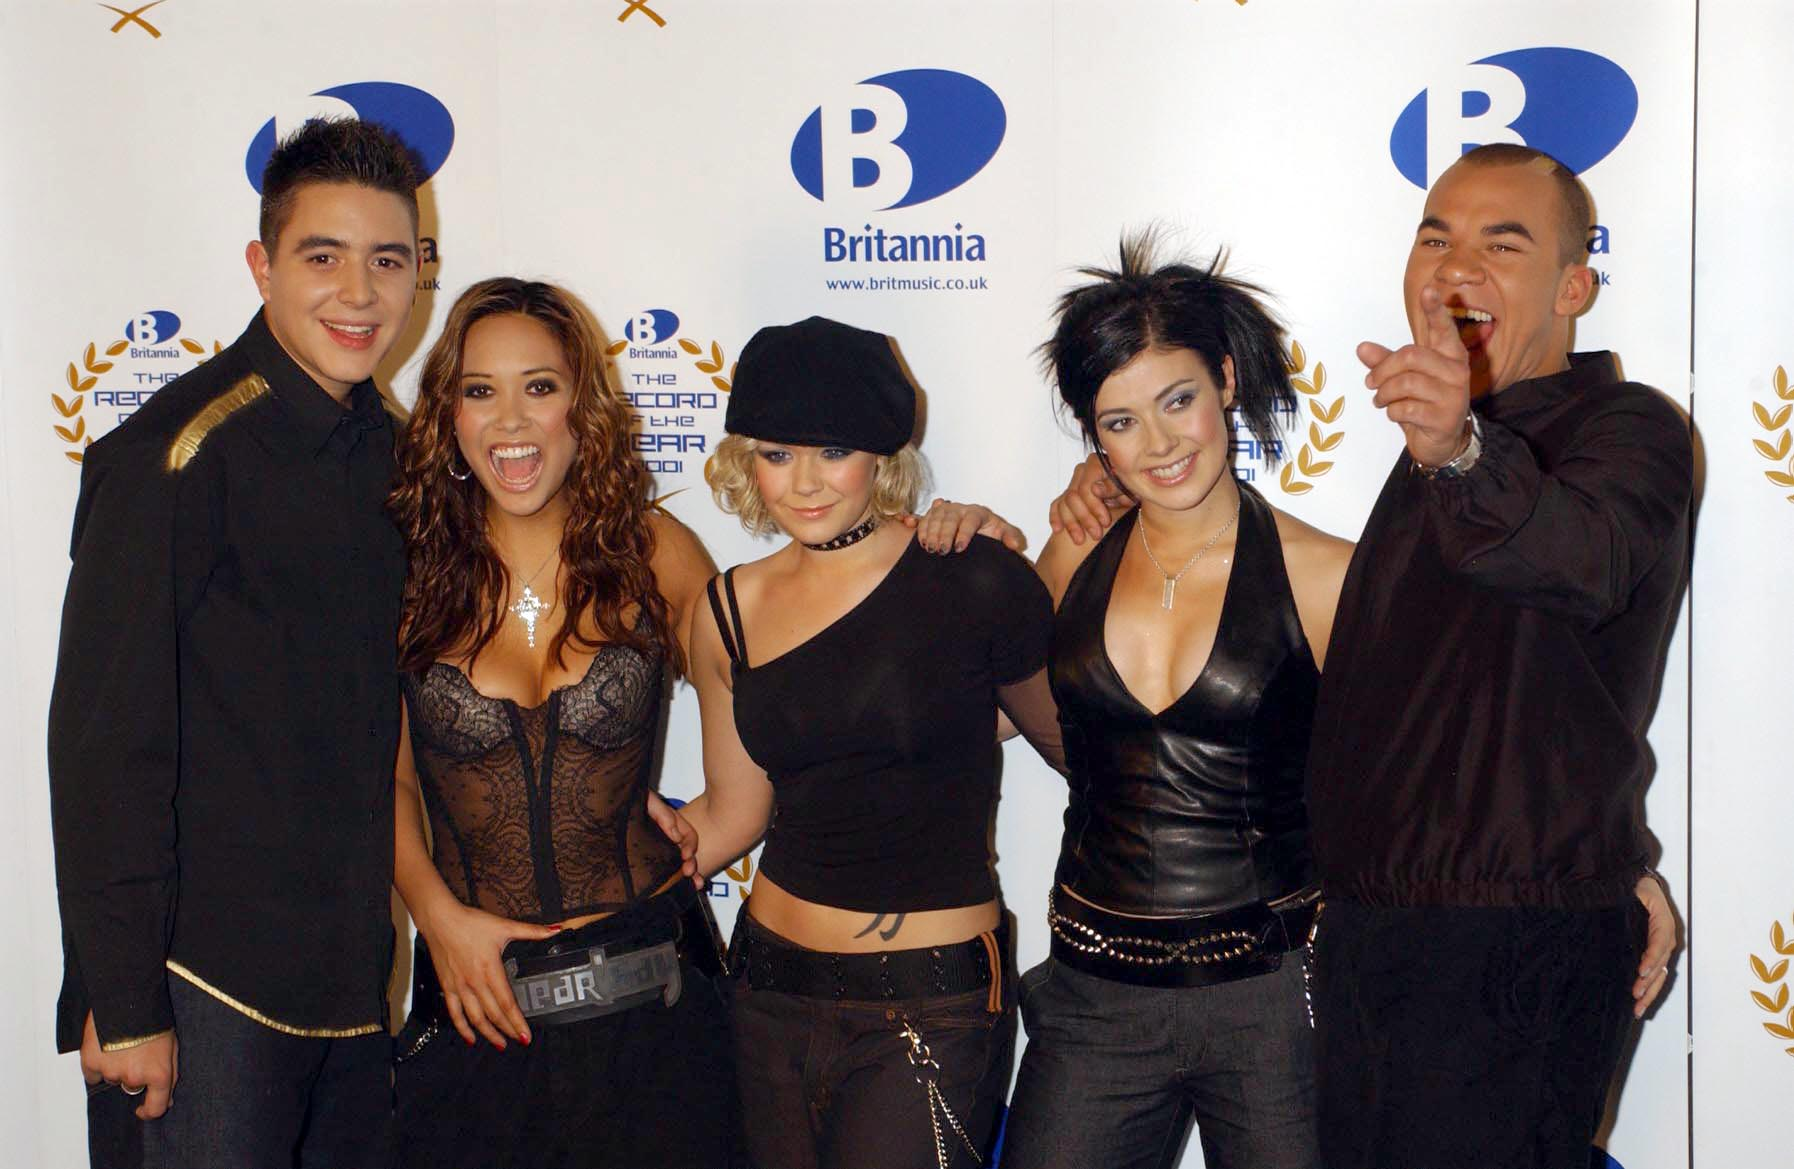 Pop group Hear'Say (from left) Noel Sullivan, Myleene Klass, Suzanne Shaw, Kym Marsh and Danny Foster pose for the media backstage at the Britannia Record of the Year ceremony at the London Television Centre.   (Photo by Yui Mok - PA Images/PA Images via Getty Images)